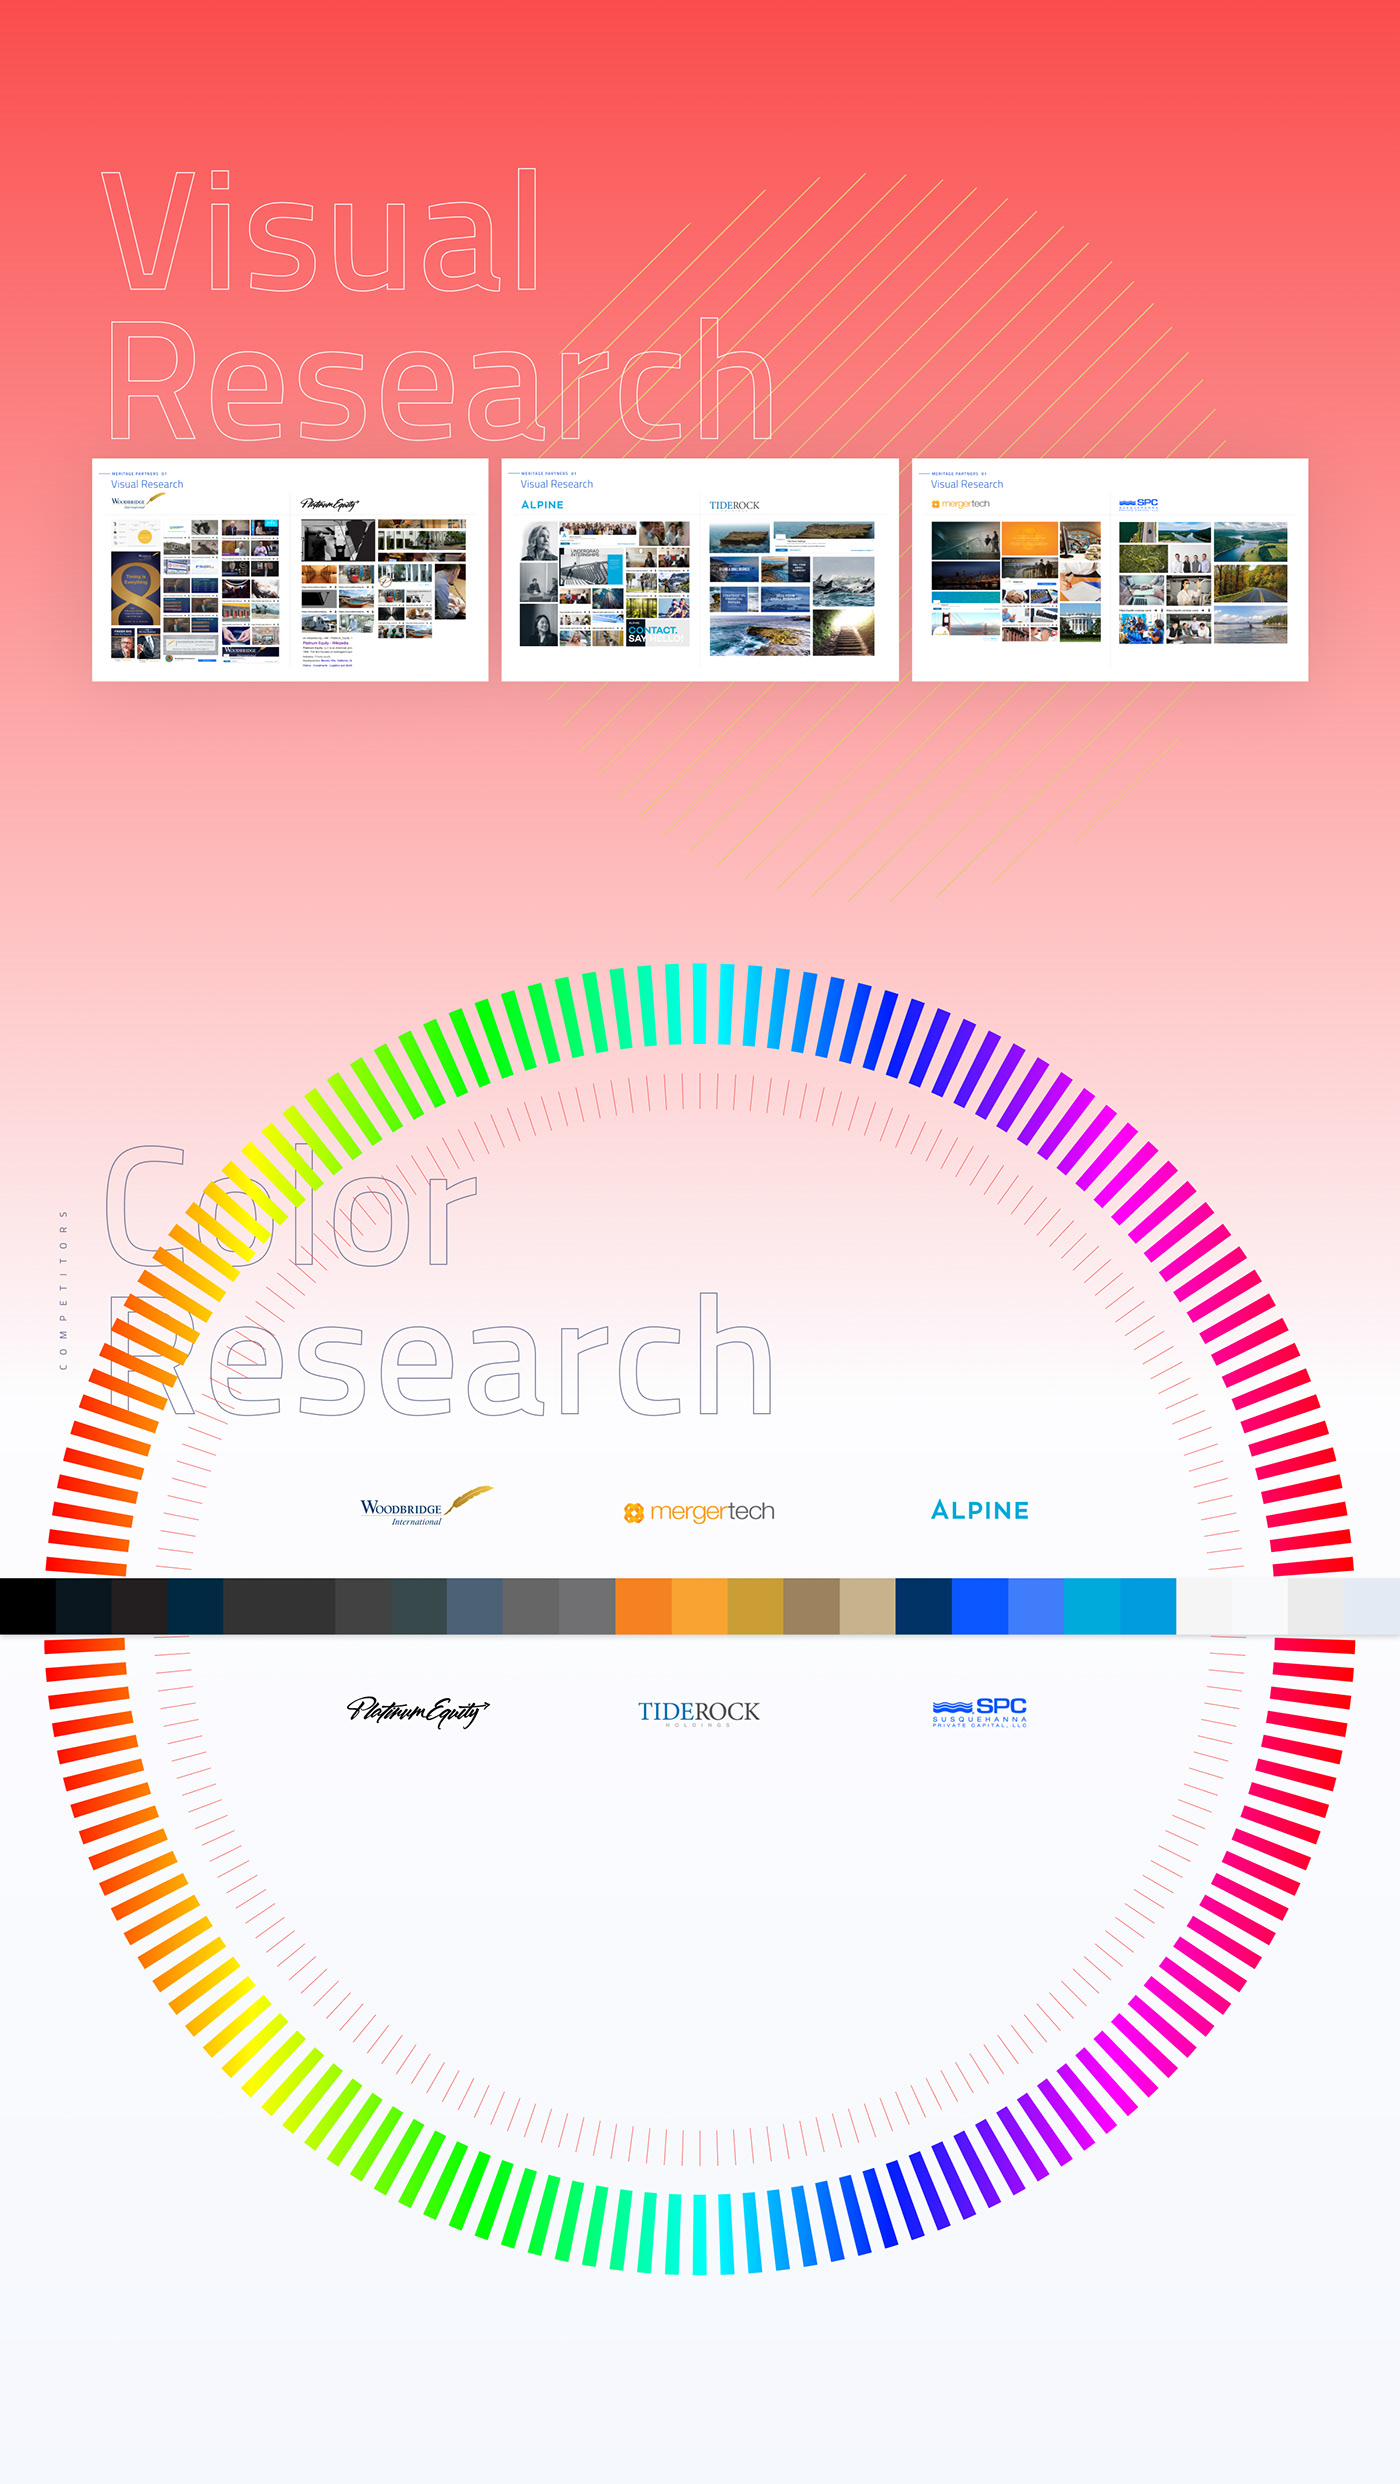 Competitors visual research and color research